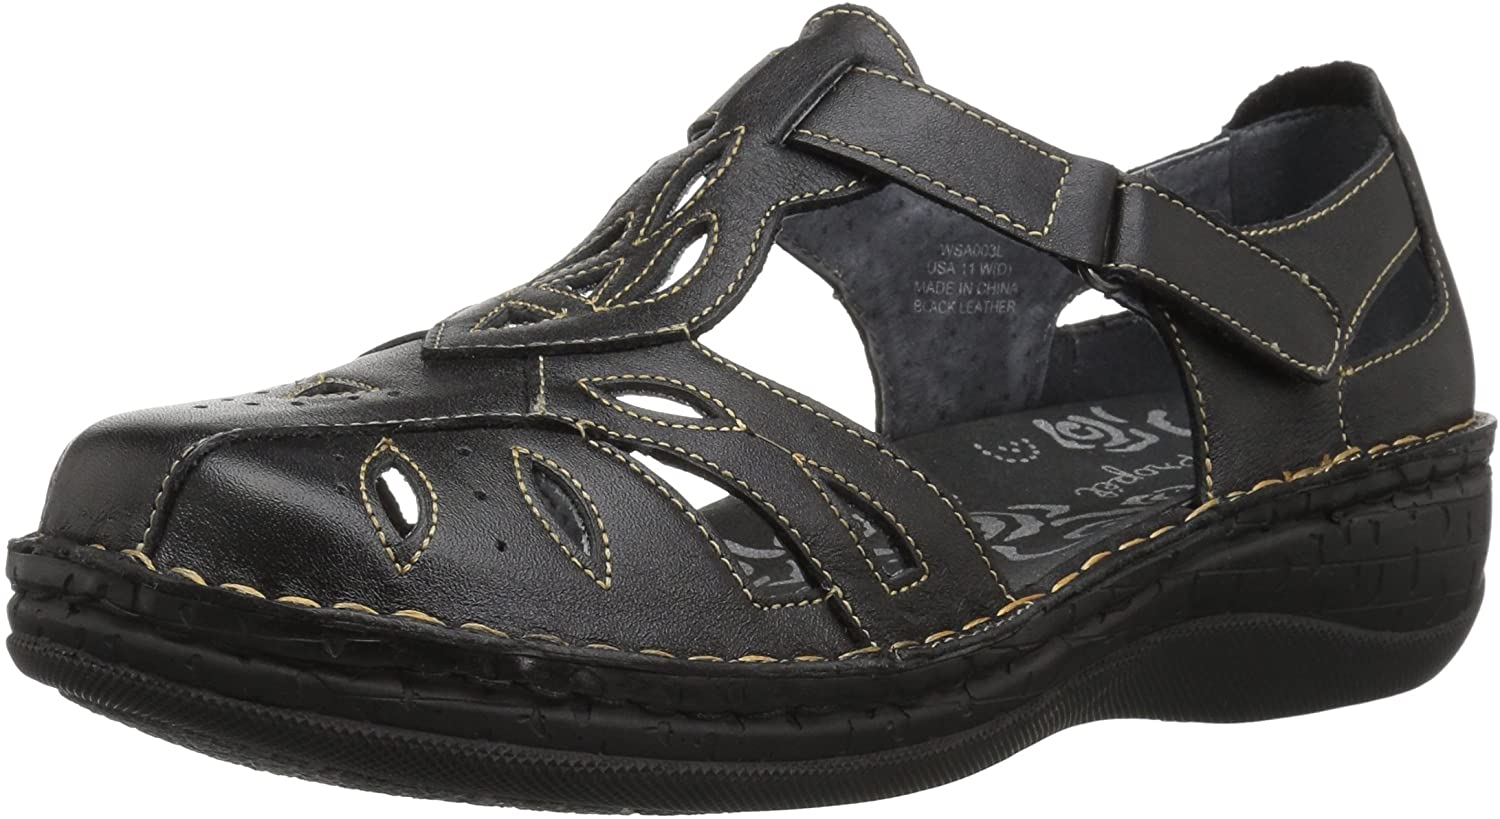 Propet Women's Jenna Fisherman Sandal Black 8 Medium US